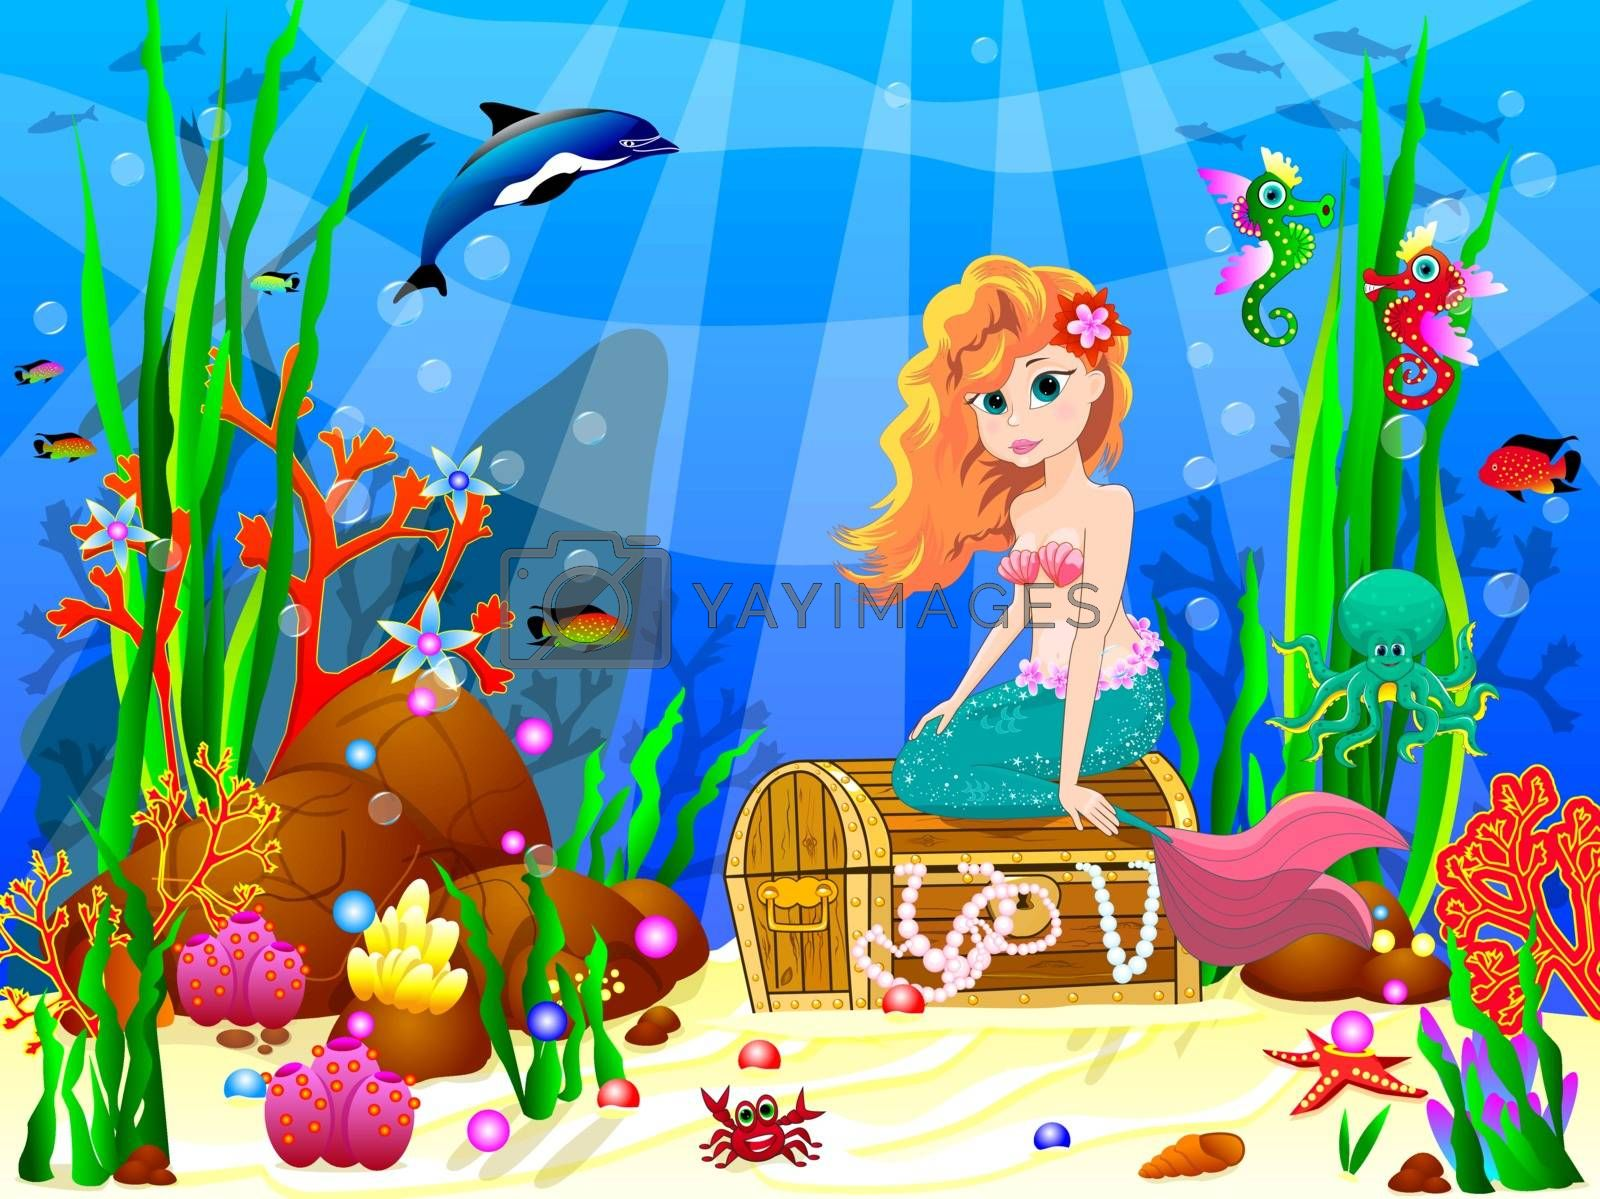 The little mermaid underwater among sea creatures and underwater plants. Mermaid is sitting on a treasure chest.